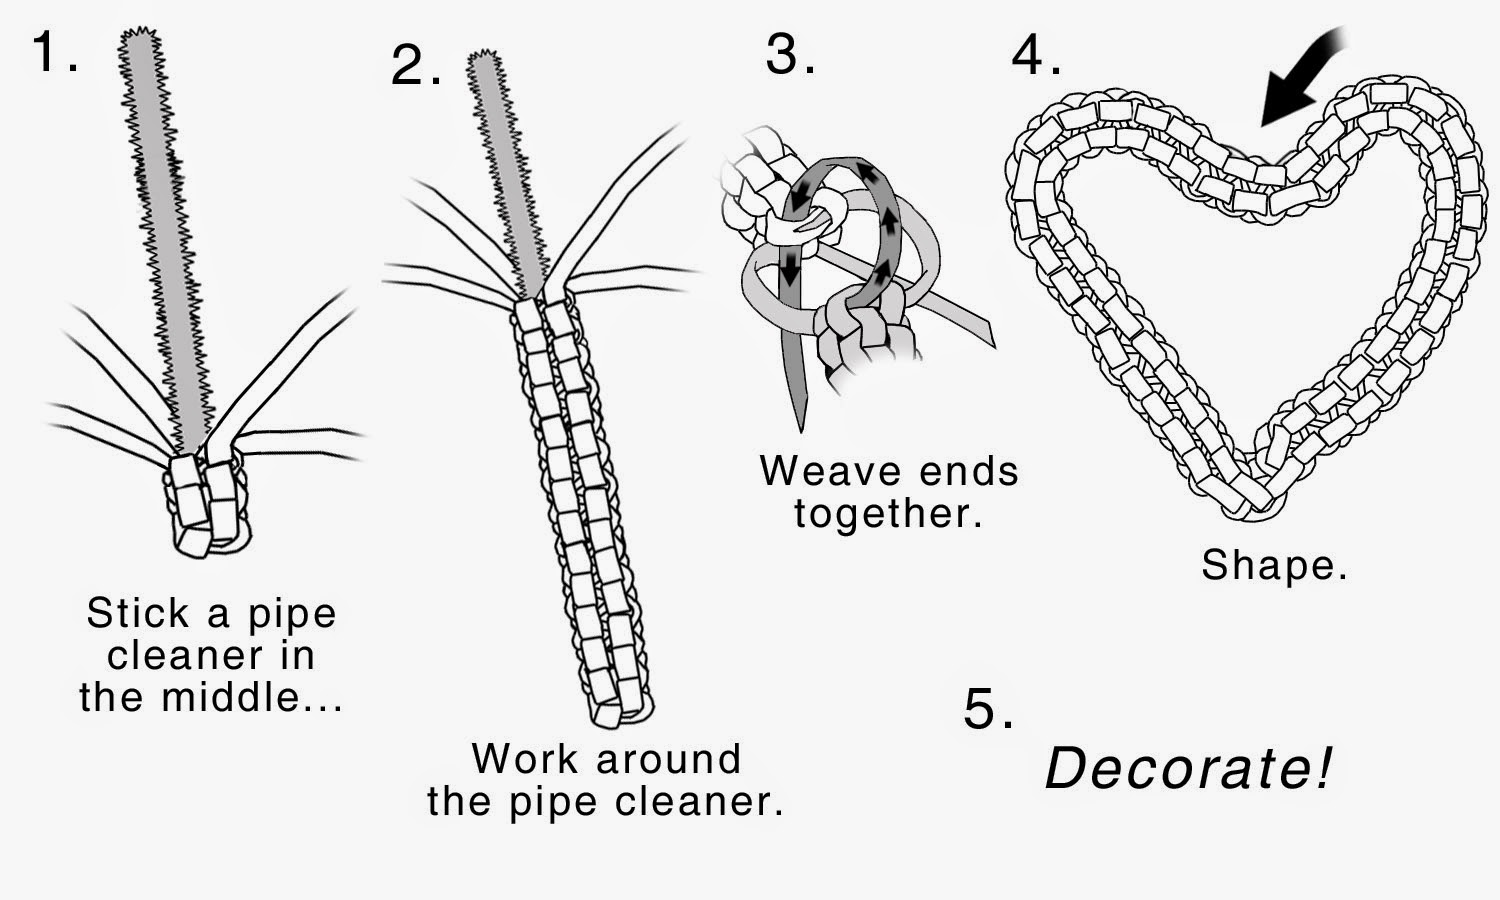 Lacing around a pipe cleaner - diagram by Pepperell Braiding Company